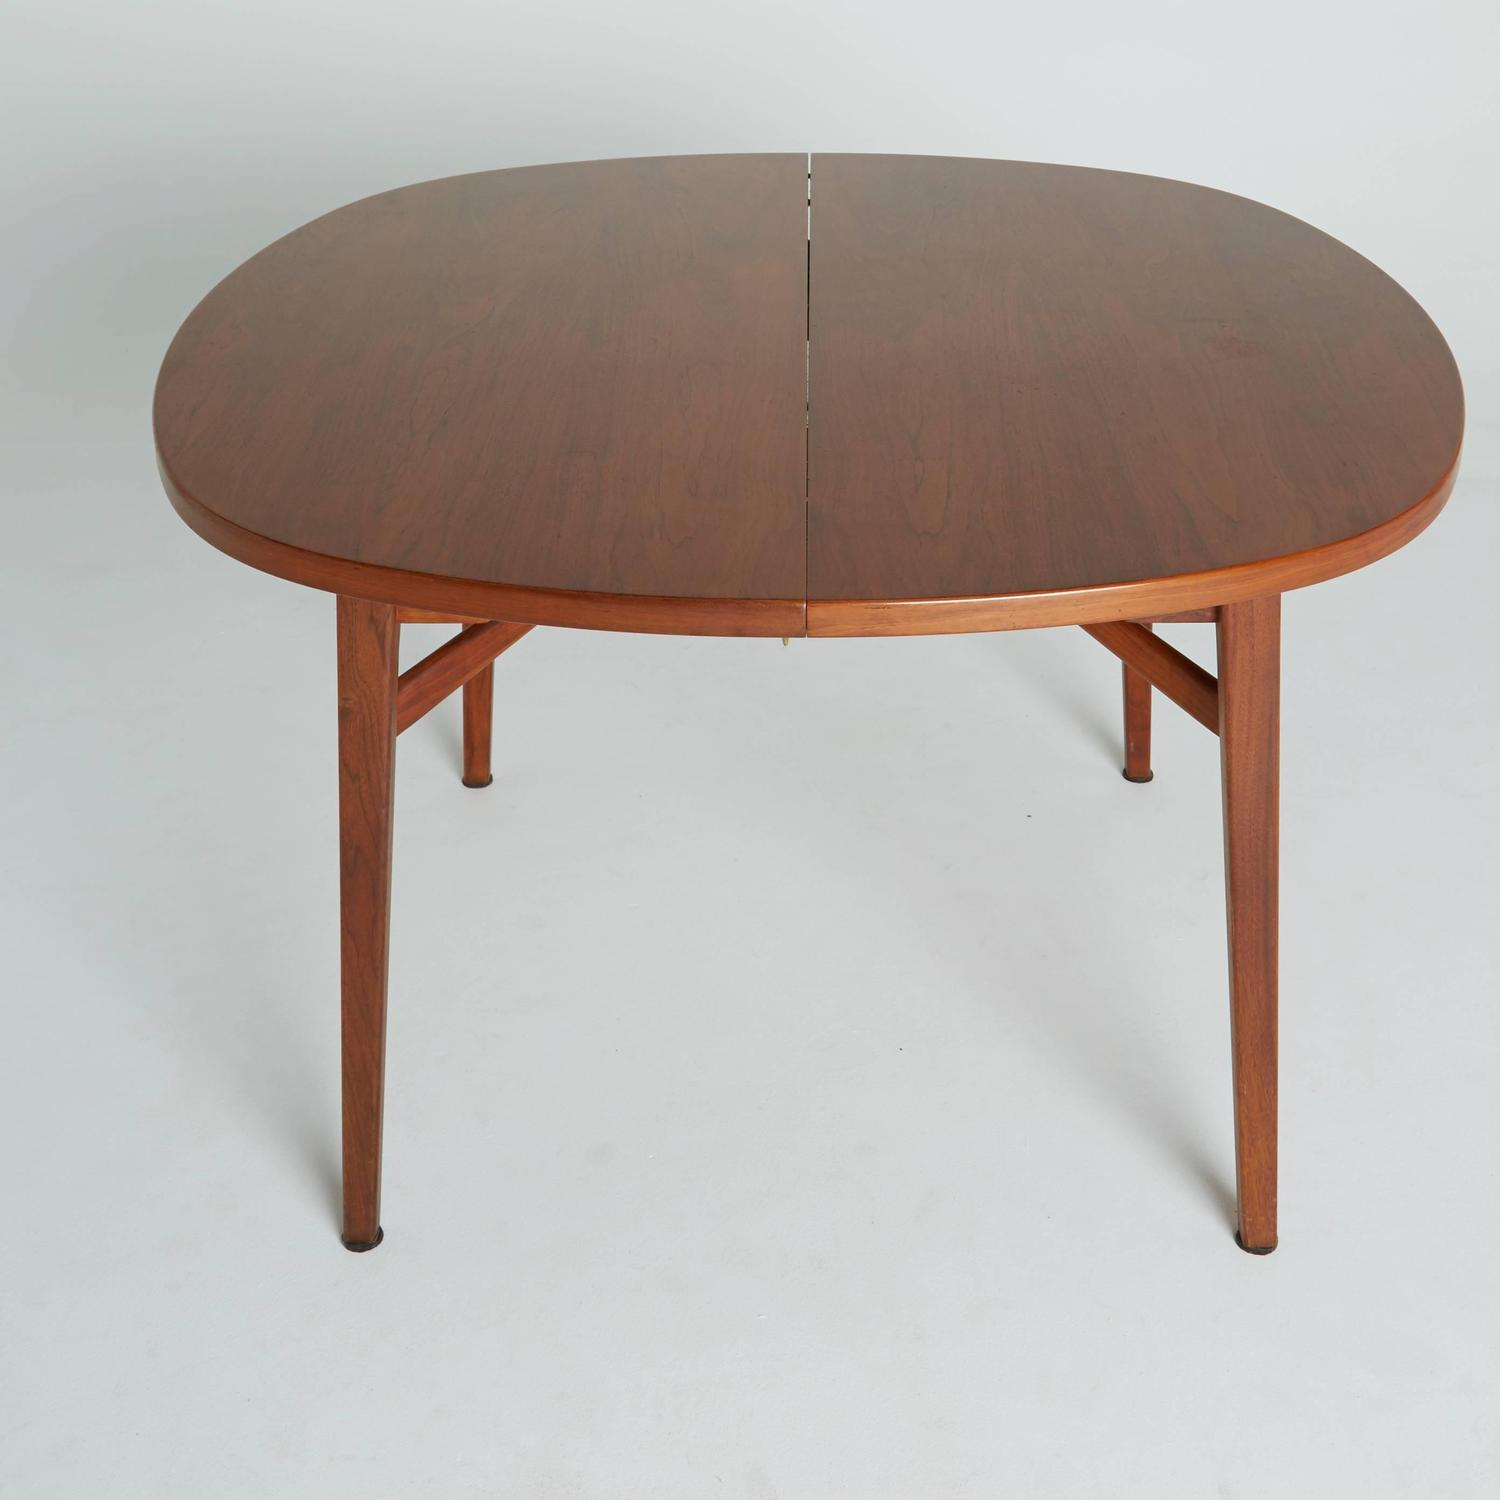 Expandable Round Dining Table For Sale Jens Risom Teak Expandable Dining Table For Sale At 1stdibs